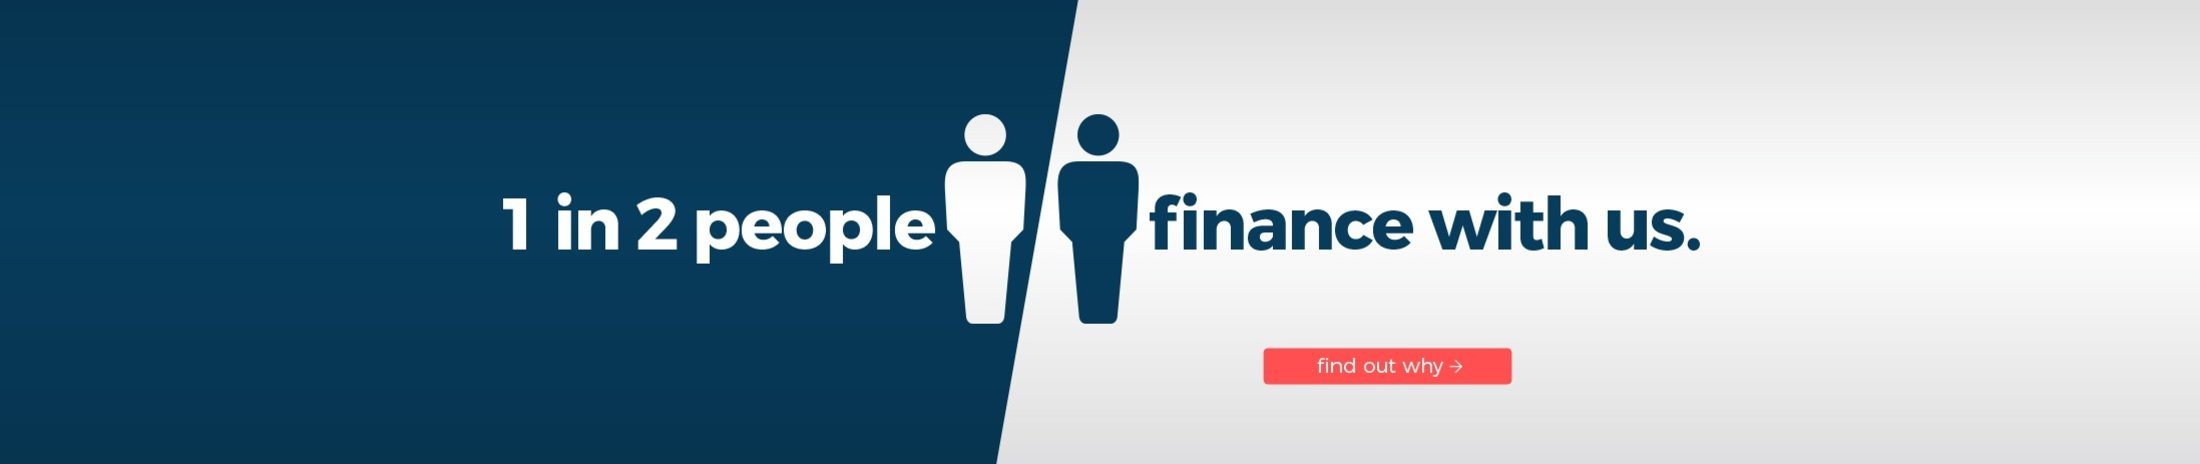 1 in 2 people finance with us